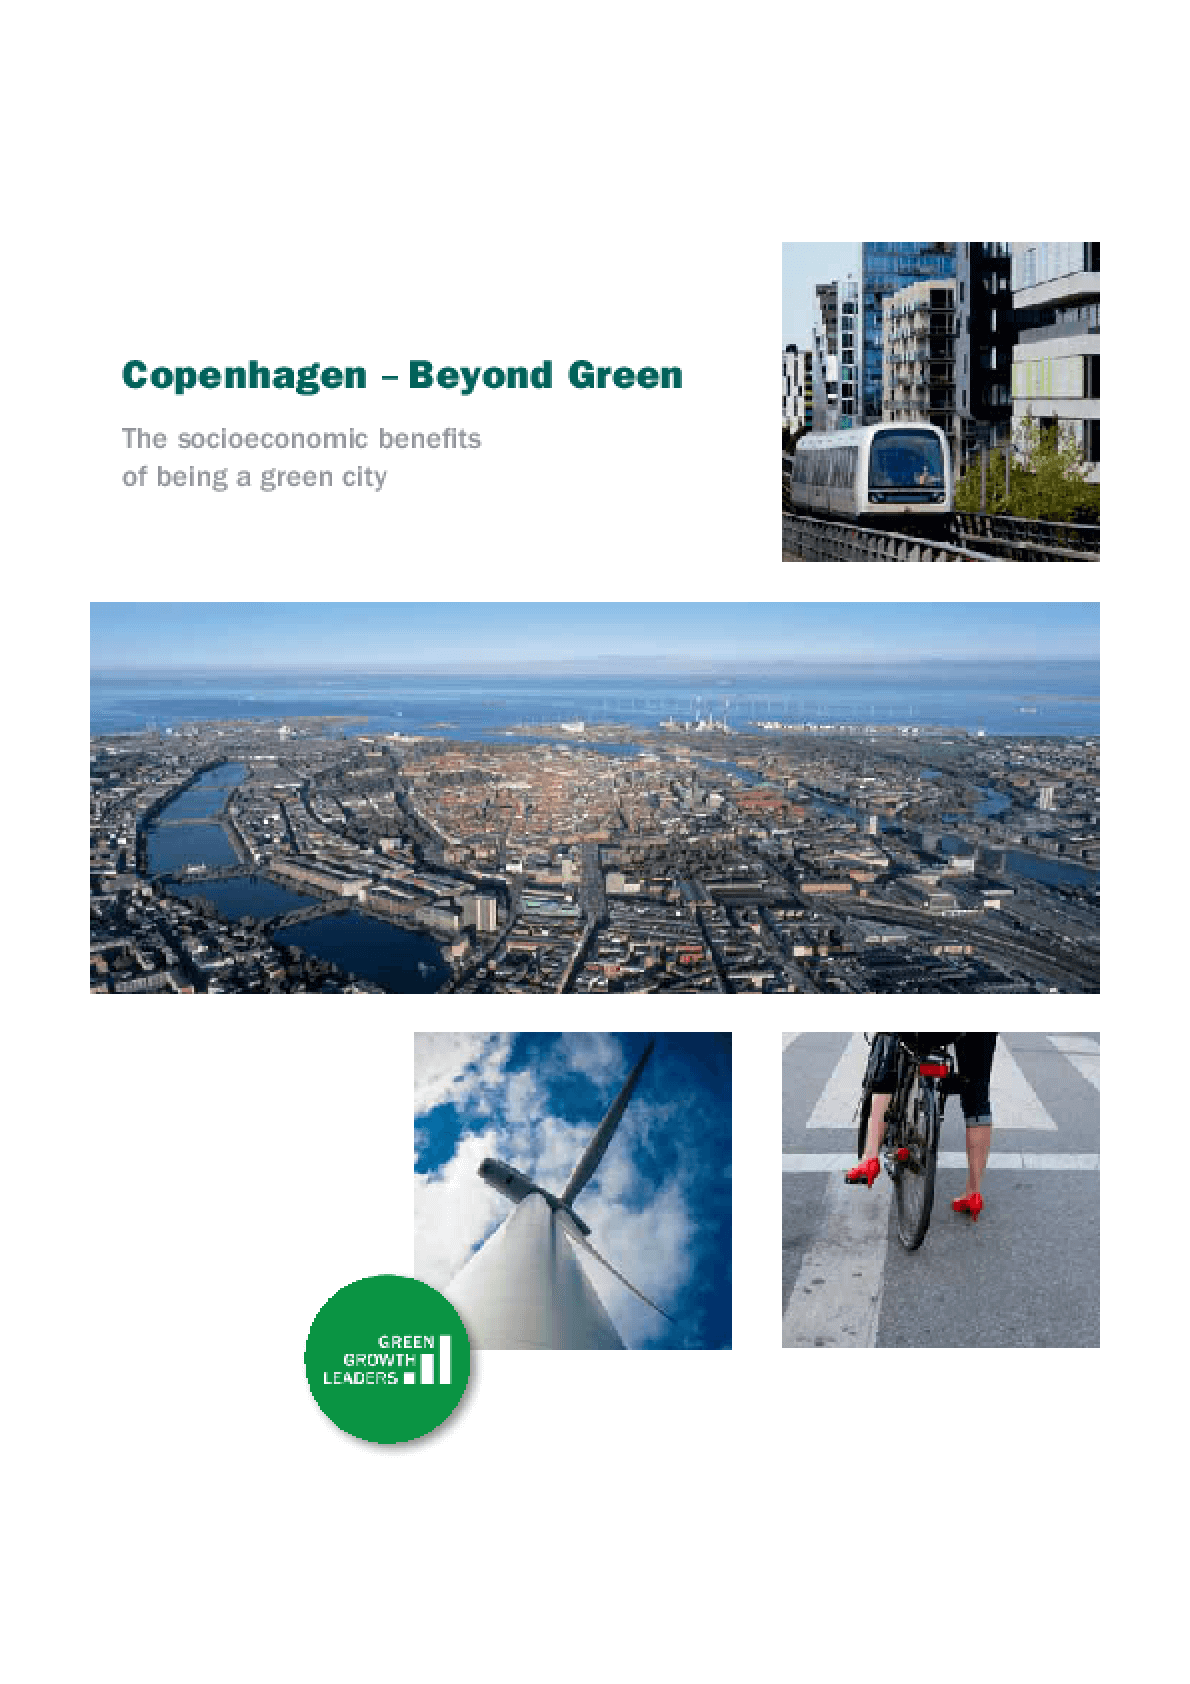 Copenhagen - Beyond Green: The socioeconomic benefits of being a green city